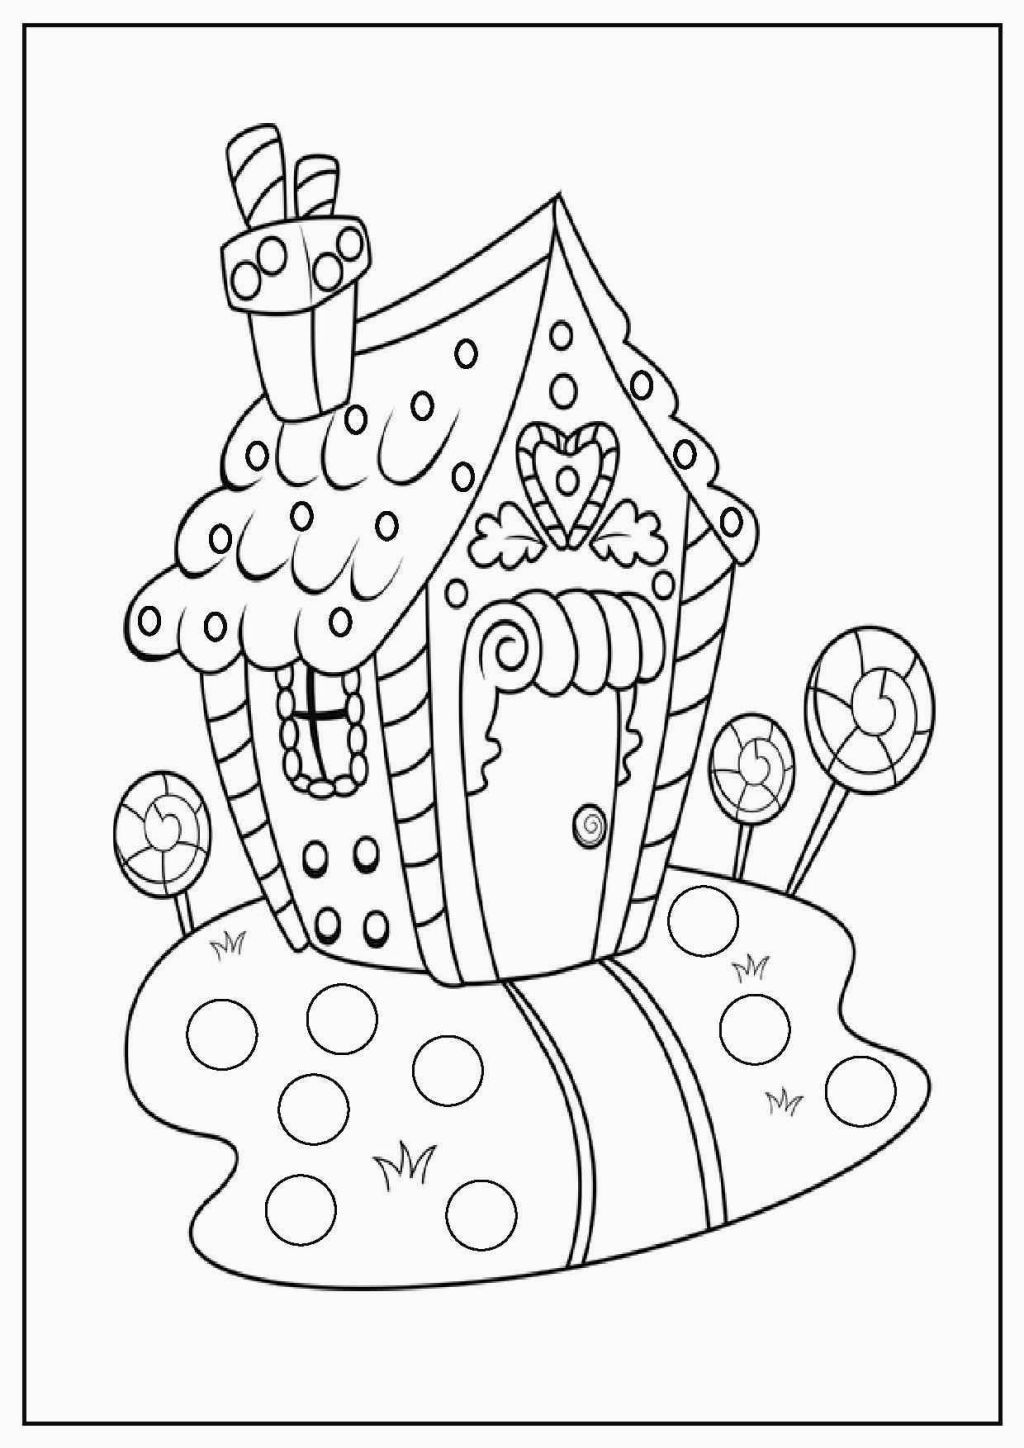 free printable christmas coloring pages and activities - free first grade christmas activity sheets 1000 ideas